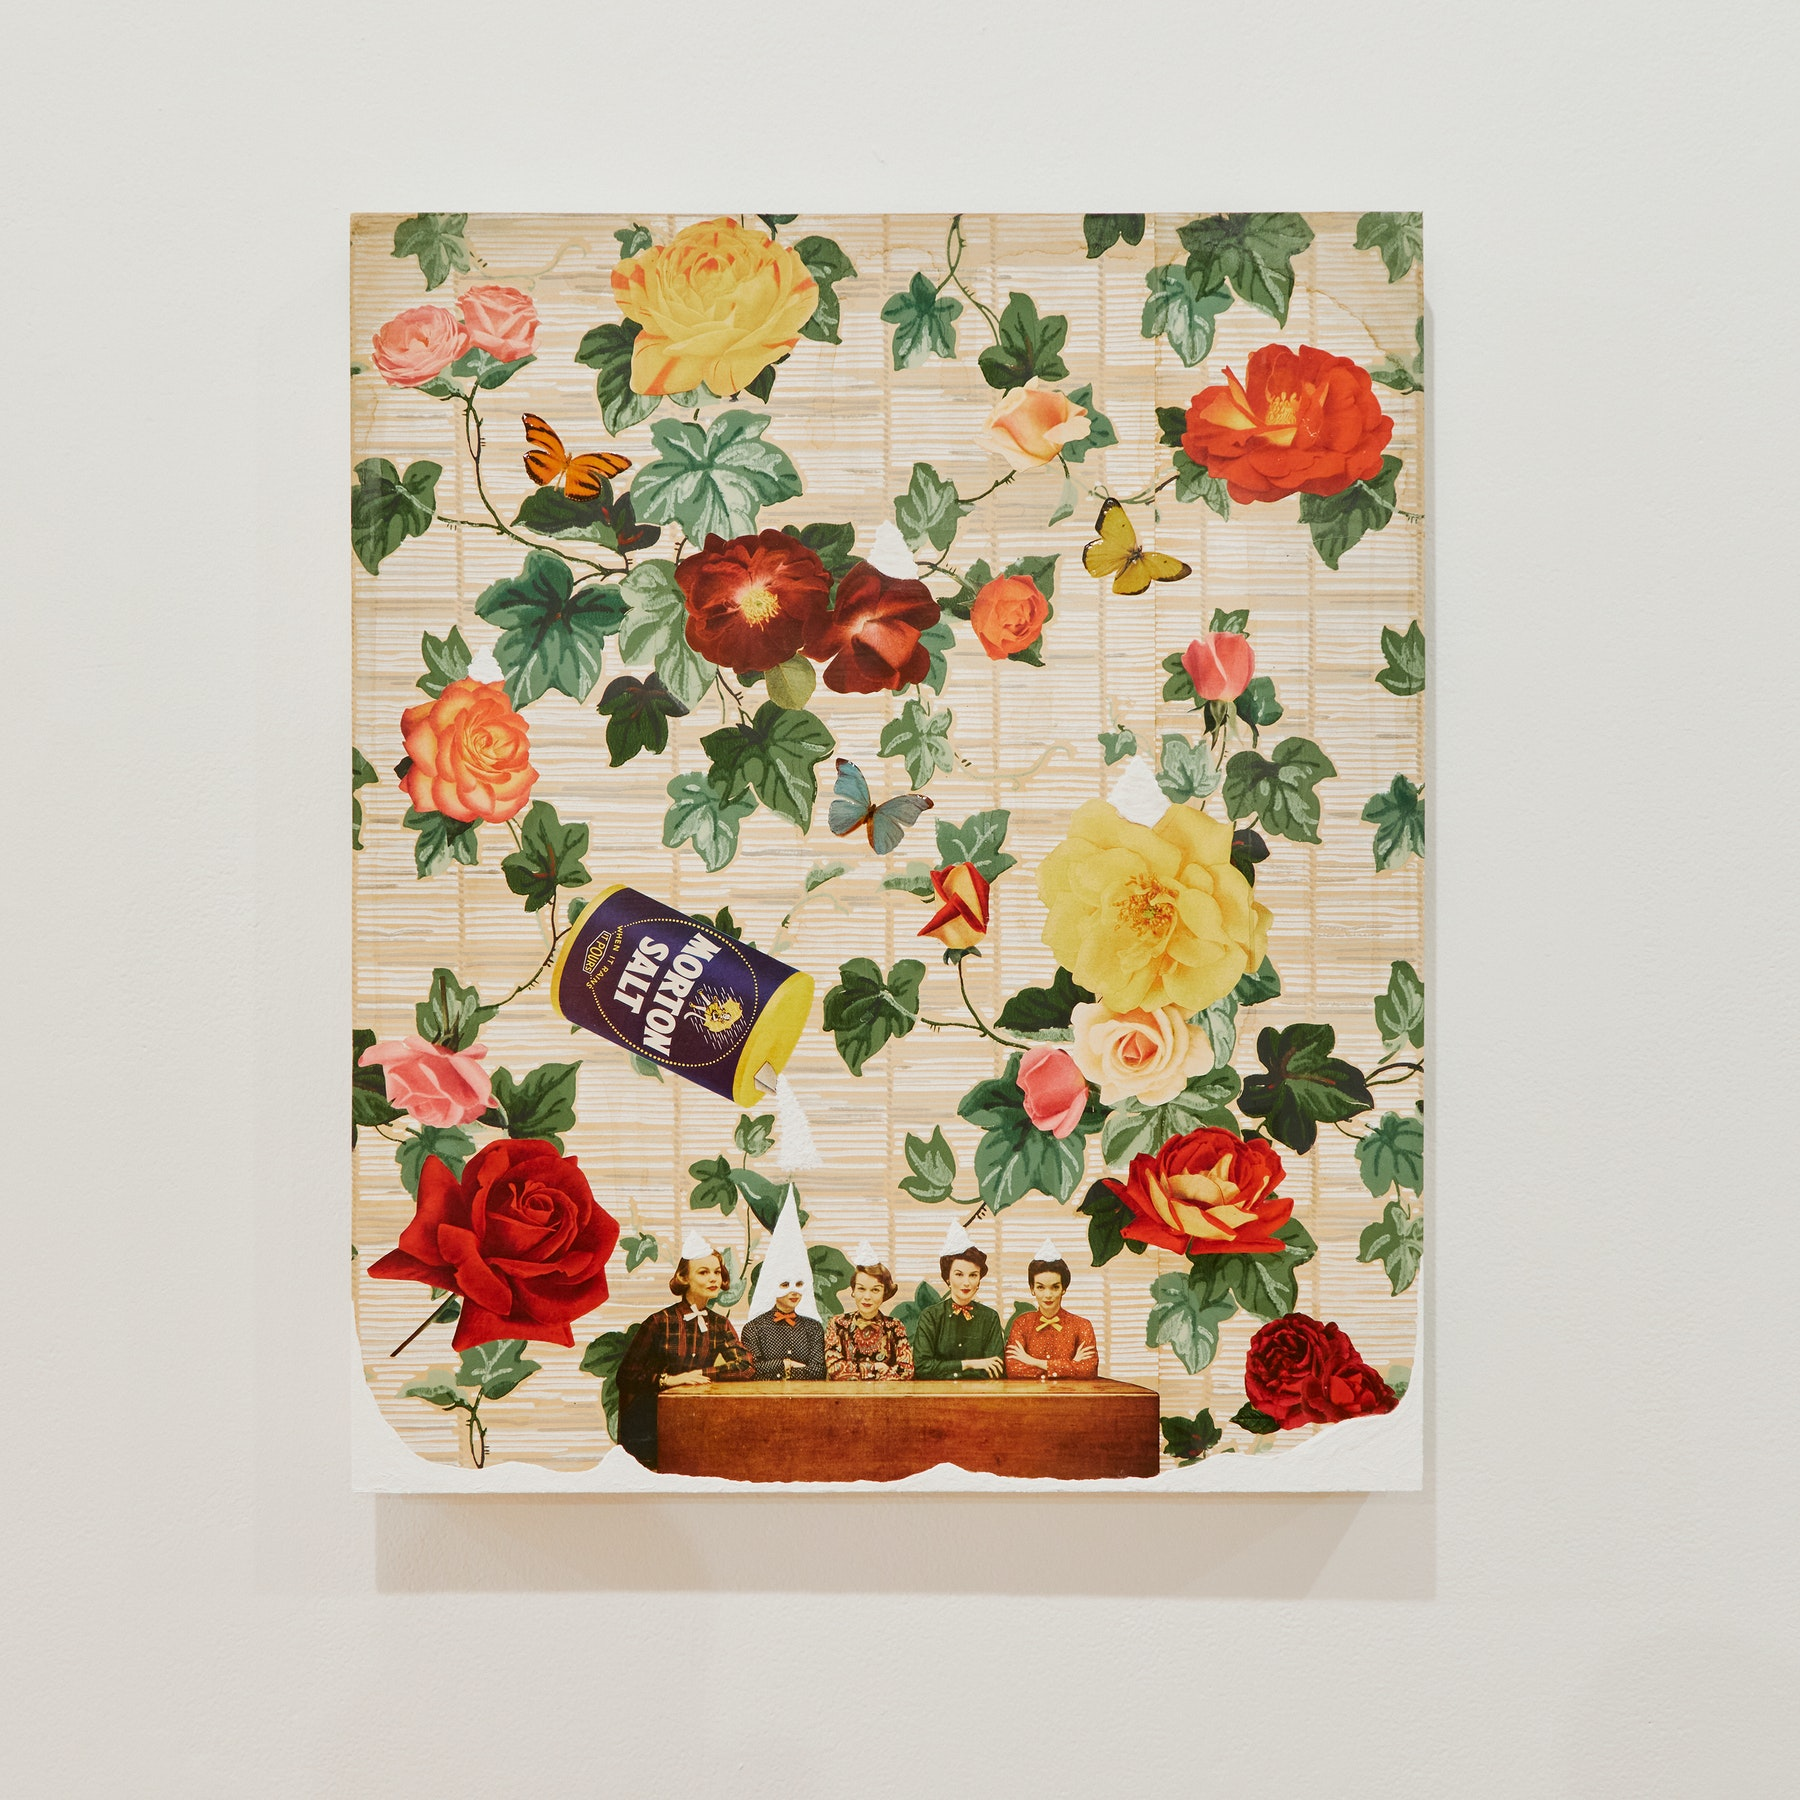 "Genevieve Gaignard ""Salty Karens,"" 2020 Mixed media on panel 24 x 20 x 1.5"" [HxWxD] (60.96 x 50.8 x 3.81 cm) Inventory #GEN322 Courtesy of the artist and Vielmetter Los Angeles Photo credit: Megan Haley"